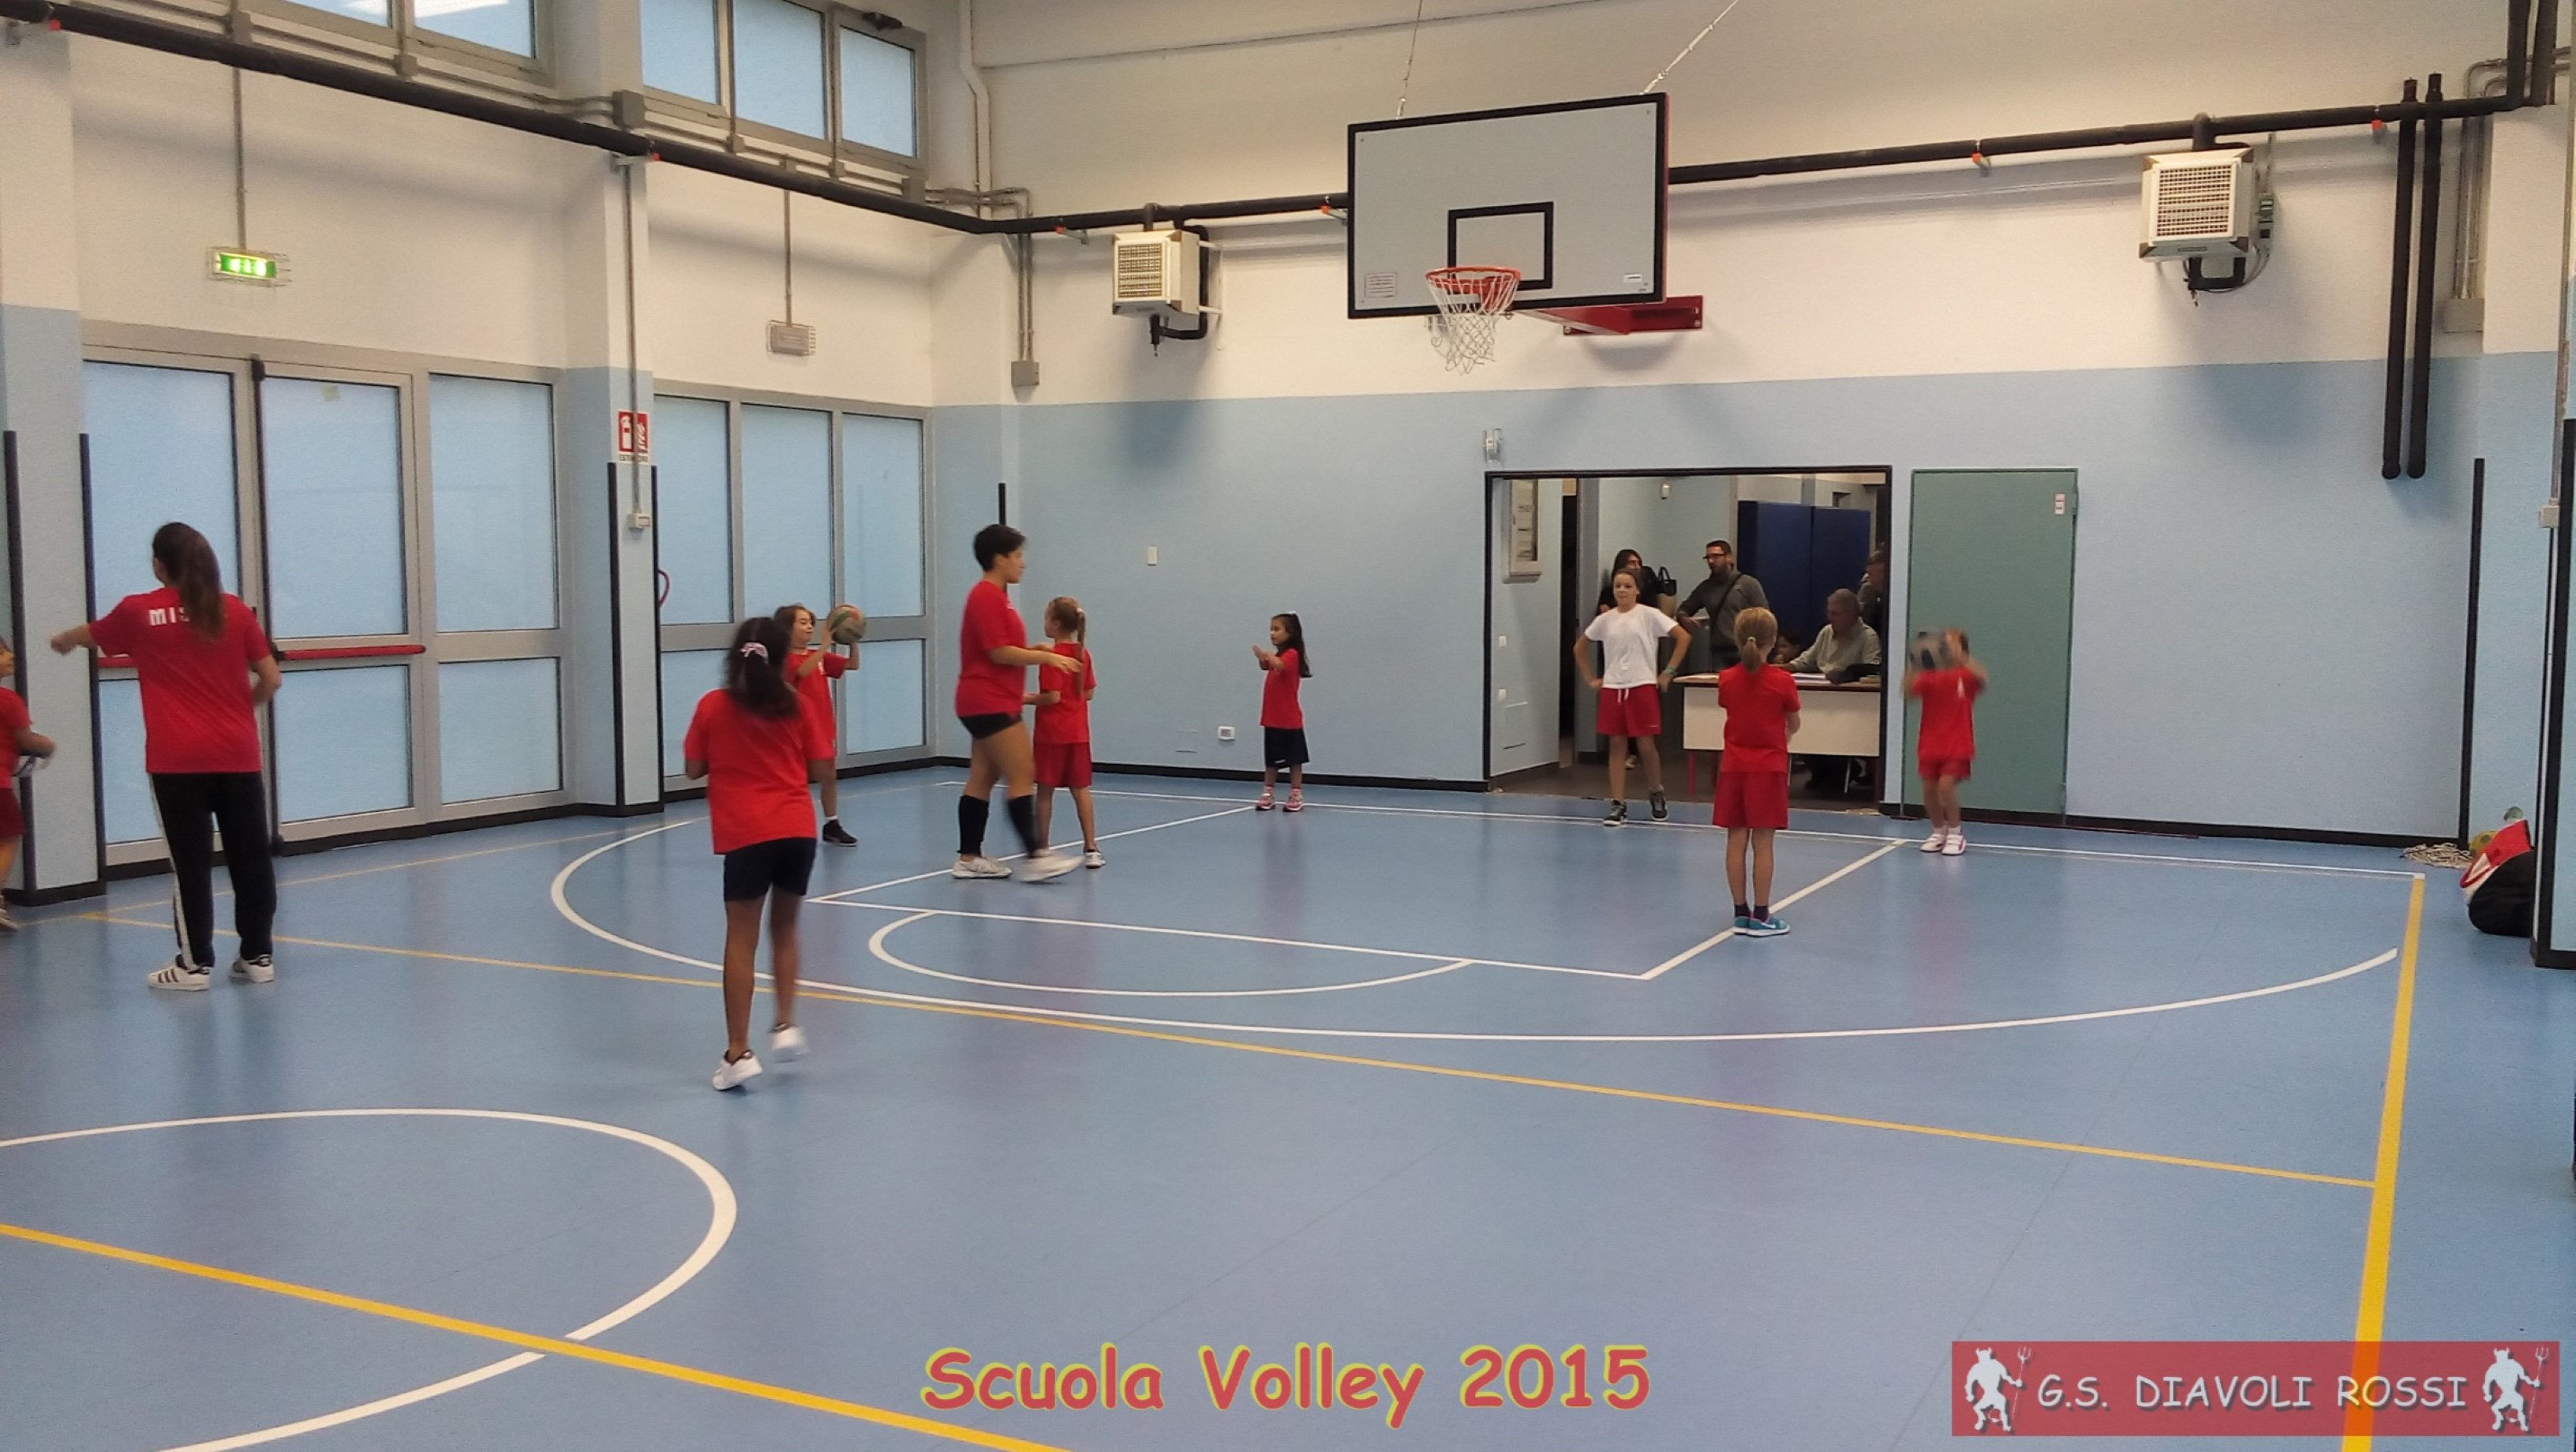 Scuola Volley-all 3